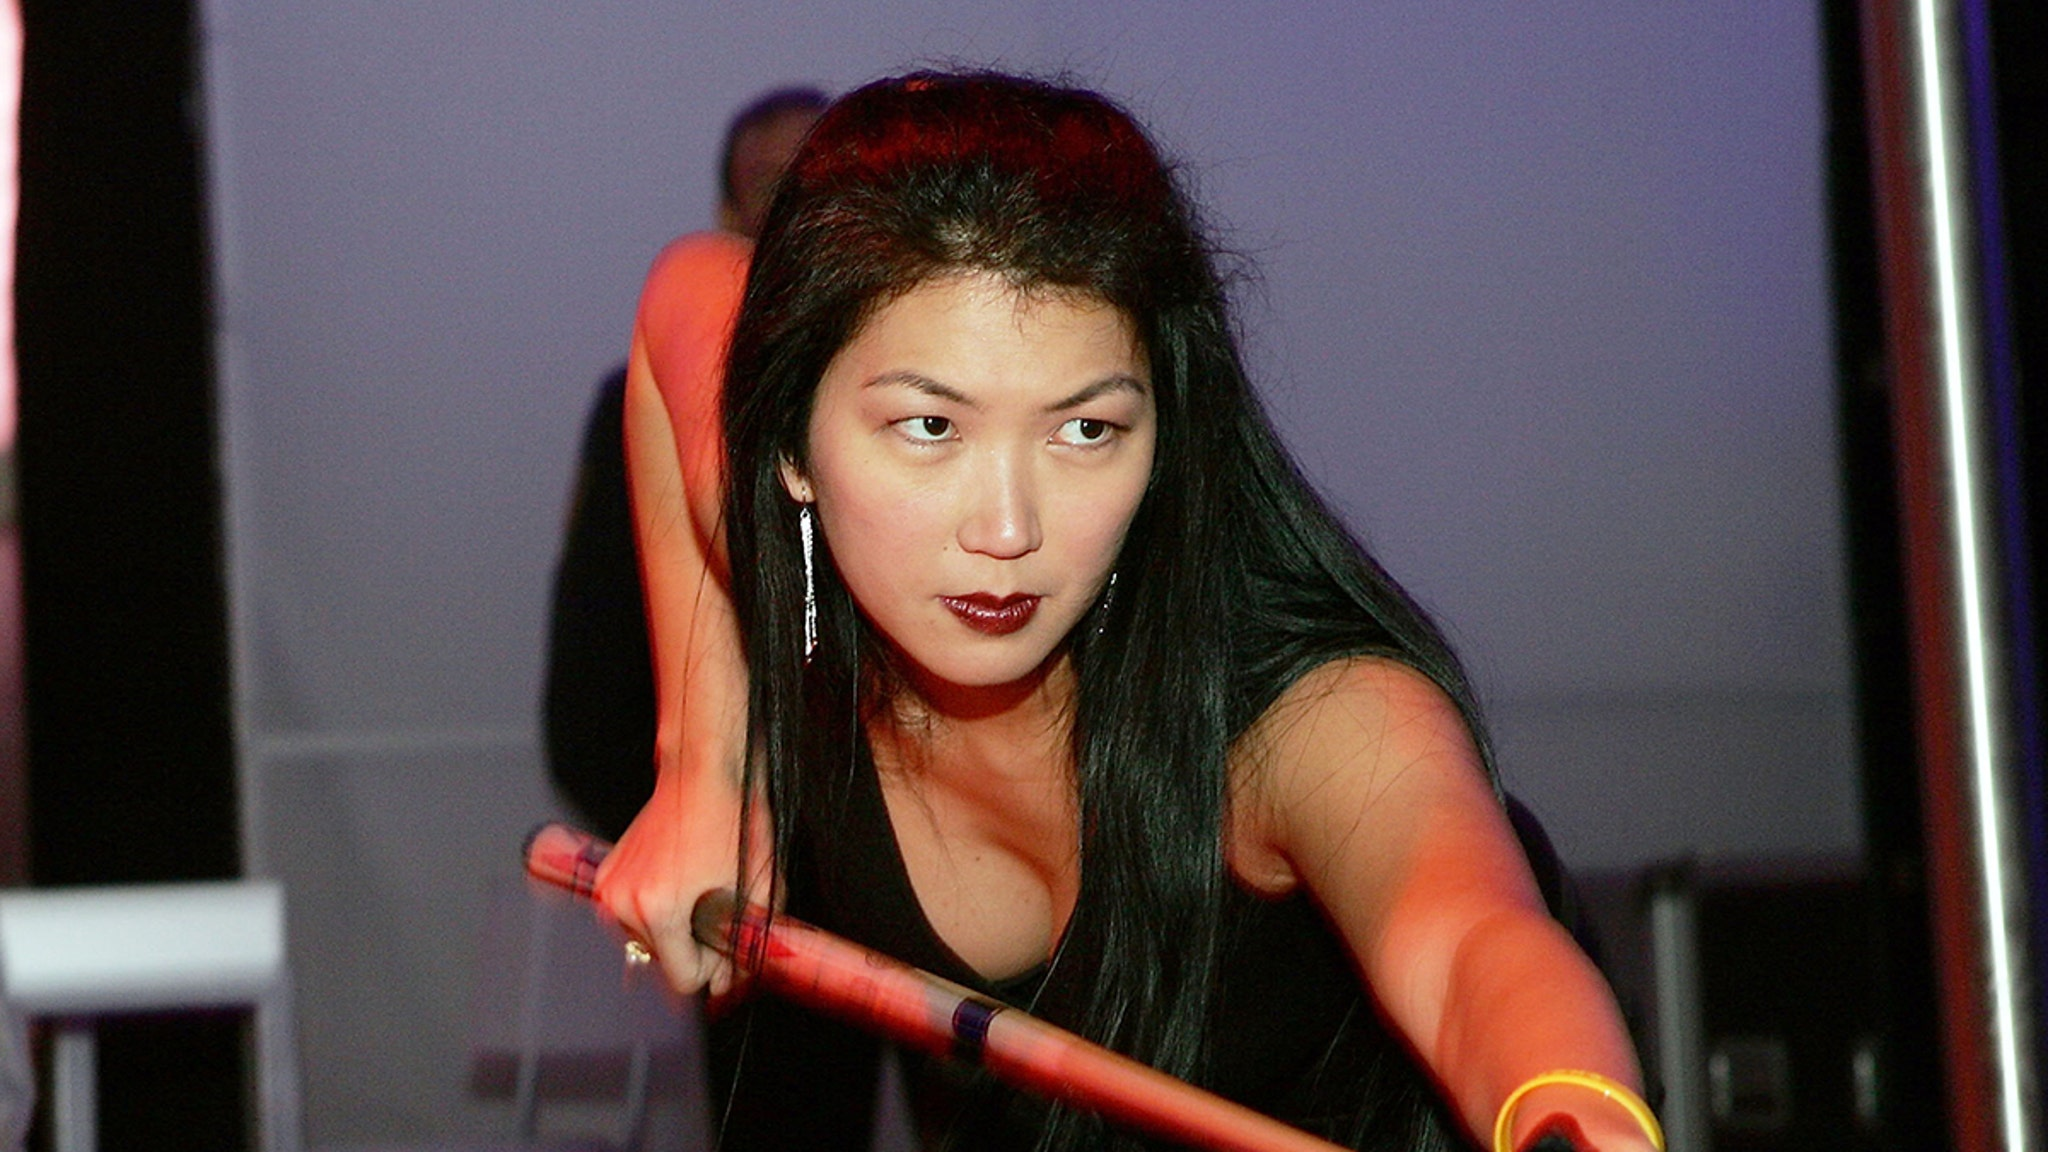 Jeanette 'The Black Widow' Lee Billiards Star Diagnosed With Terminal Cancer